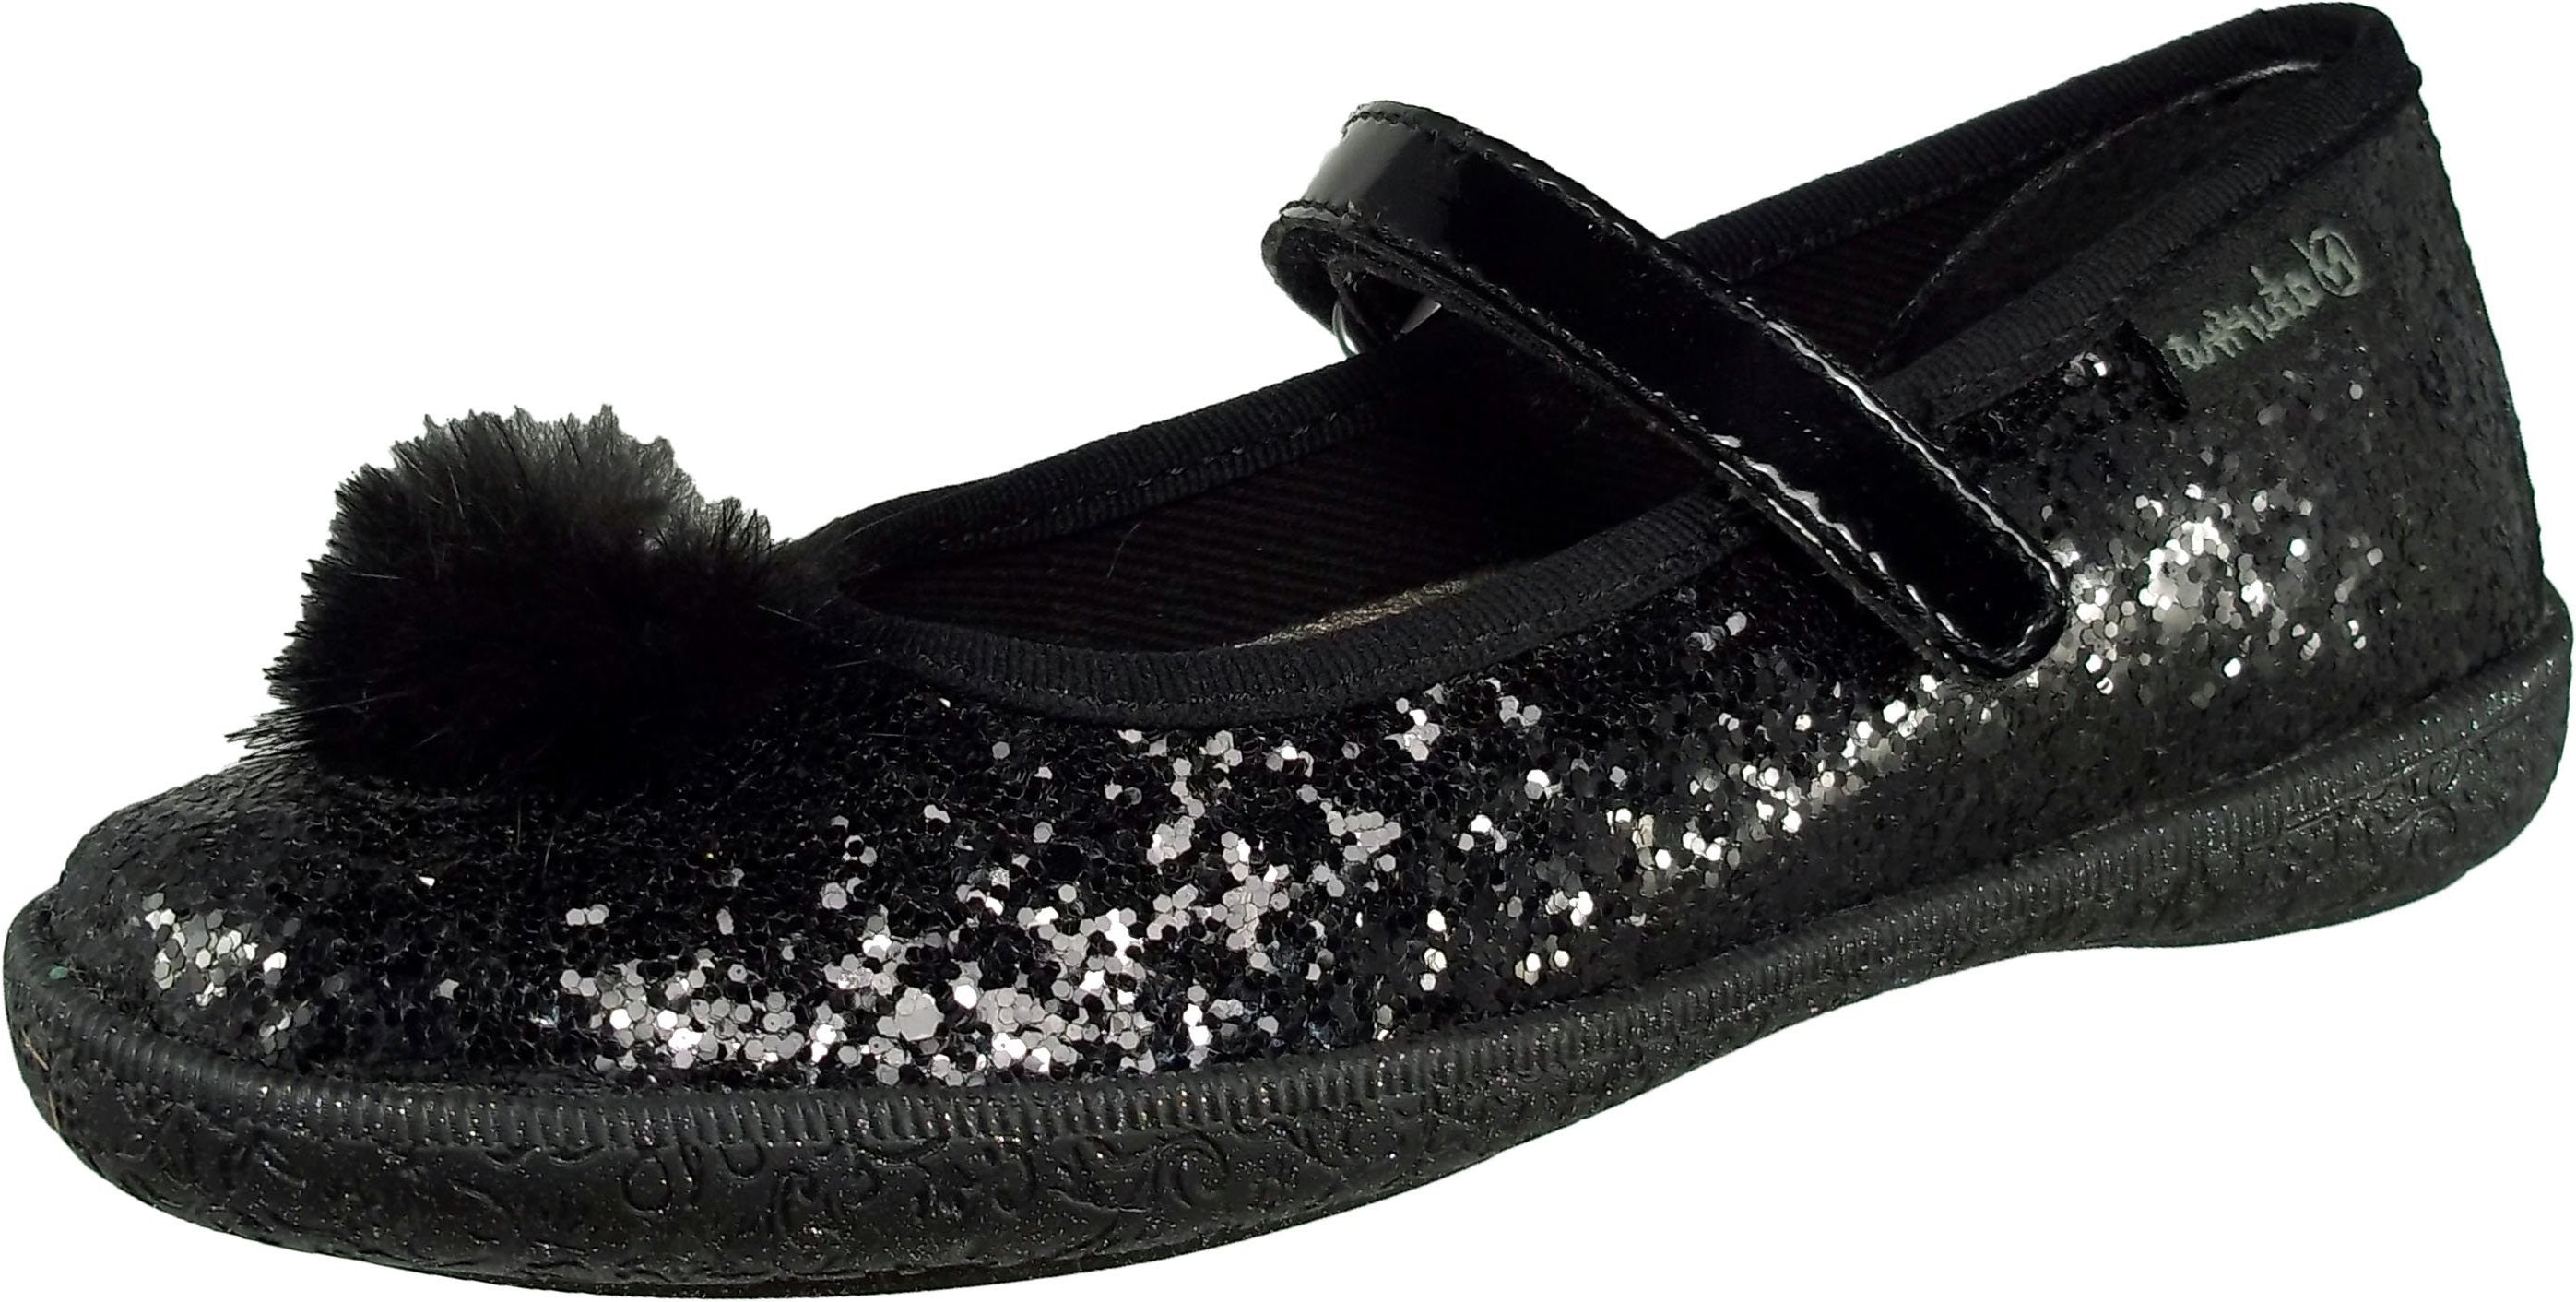 *FINAL SALE* Holiday - Glitter Black